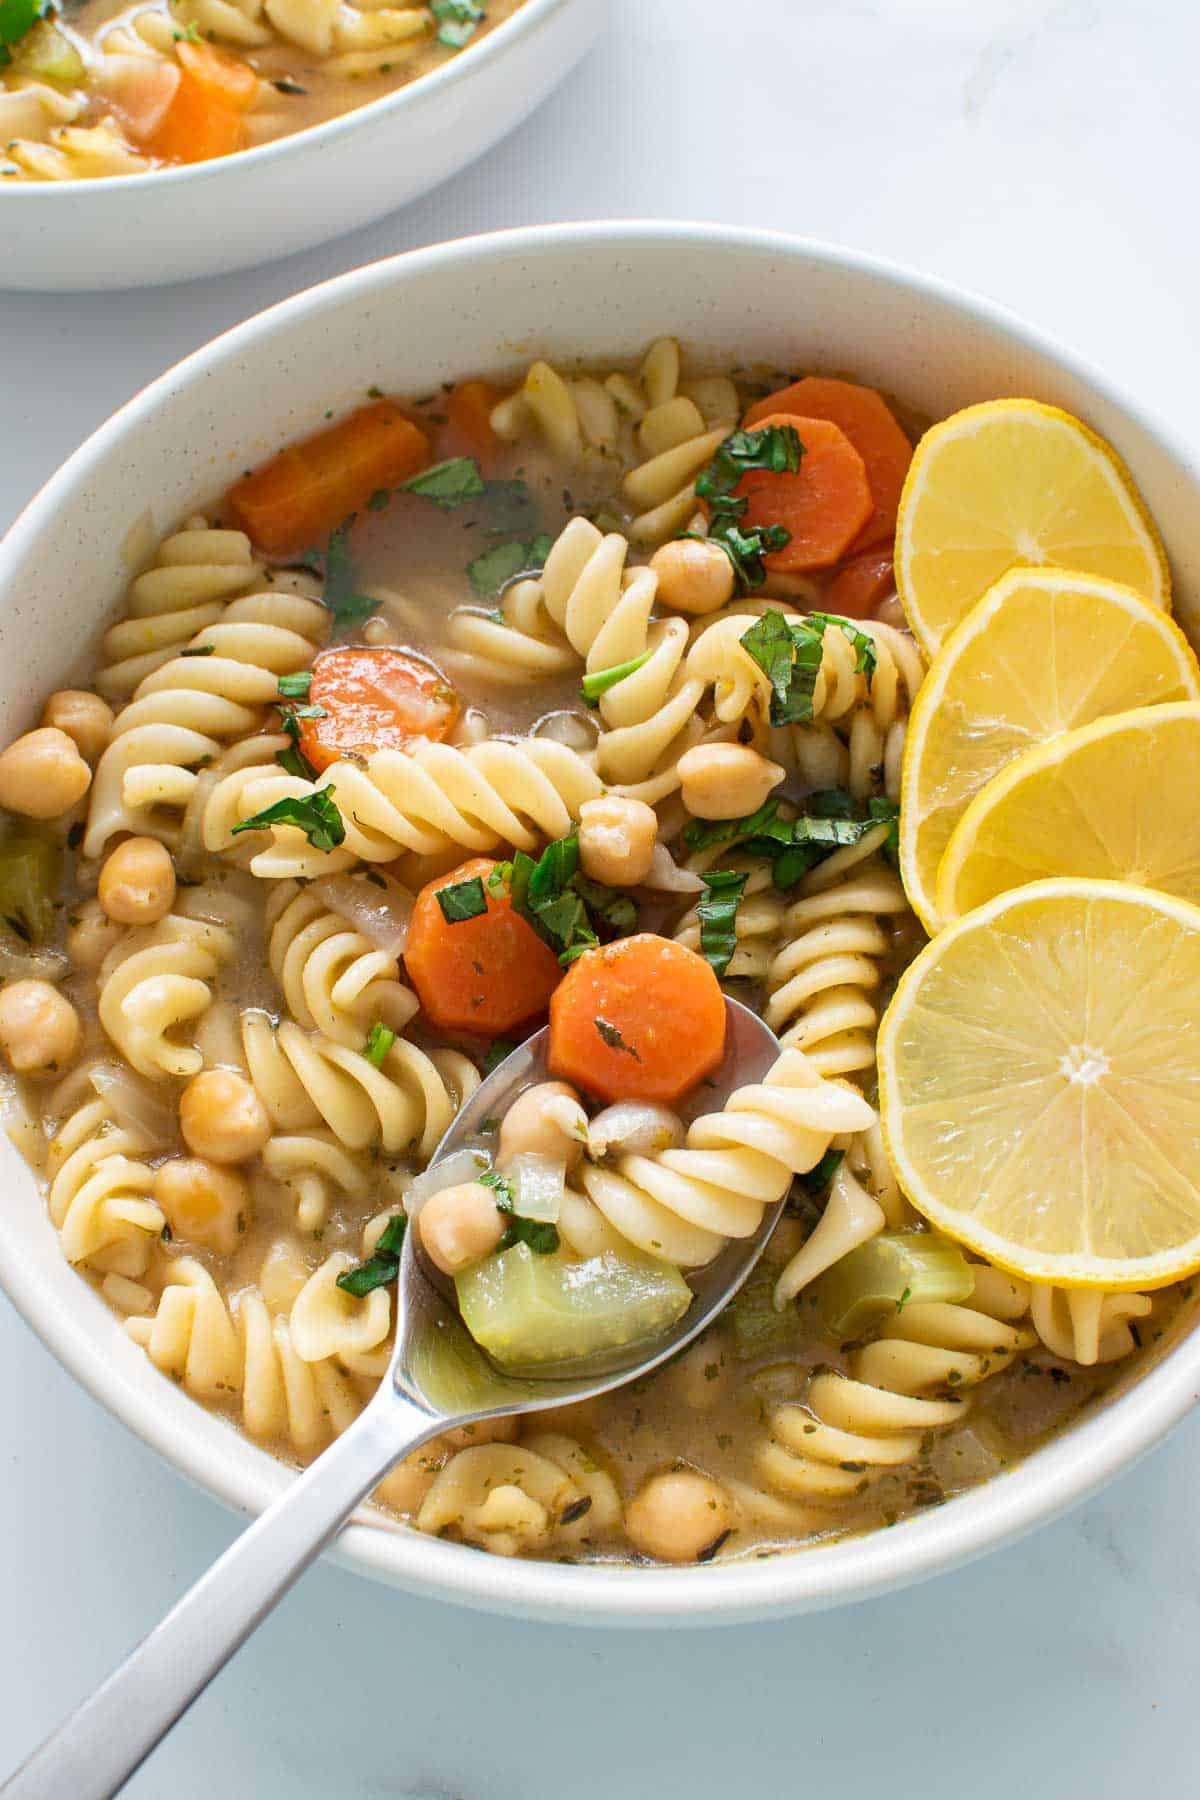 Chickpea pasta soup, with a spoon lifting up a serving.